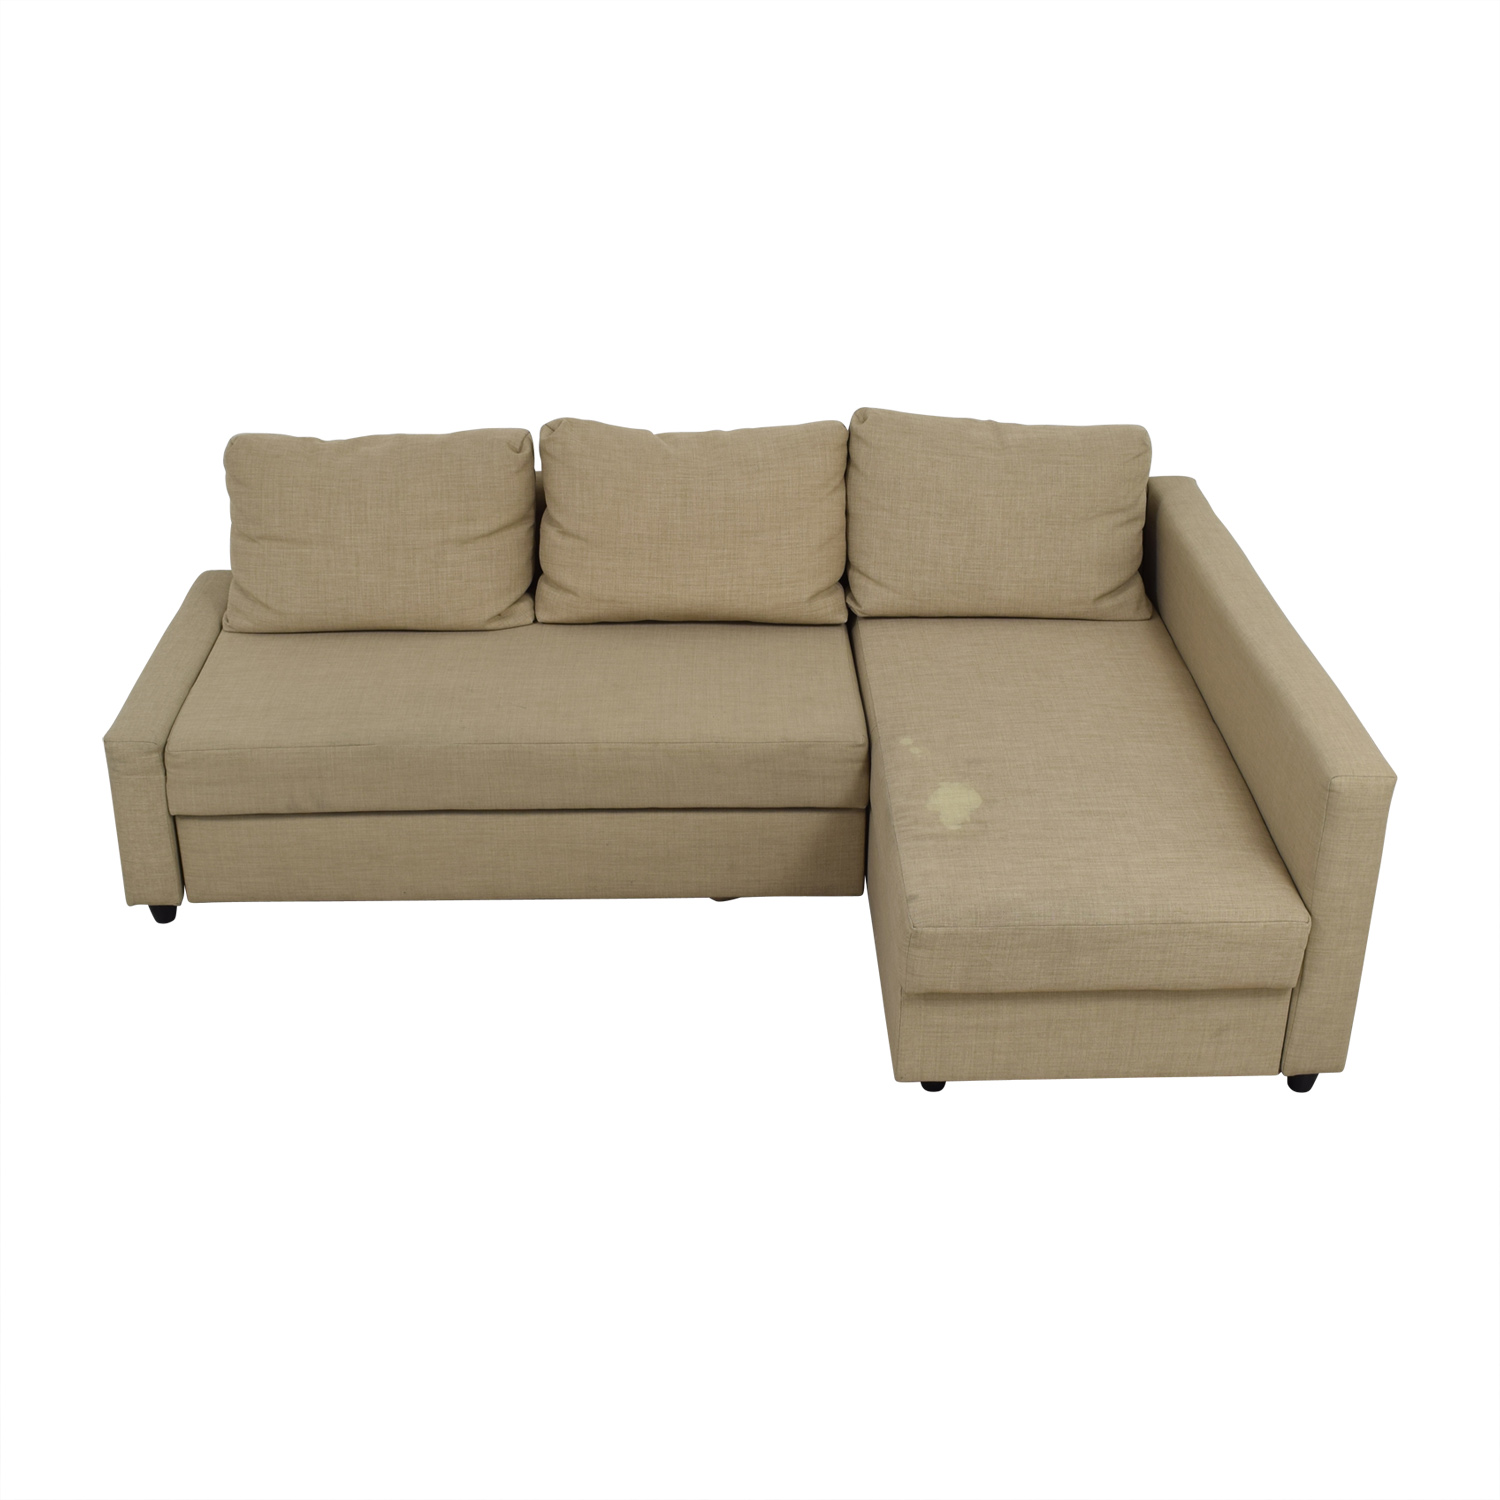 buy IKEA Friheten Tan Sleeper Sectional IKEA